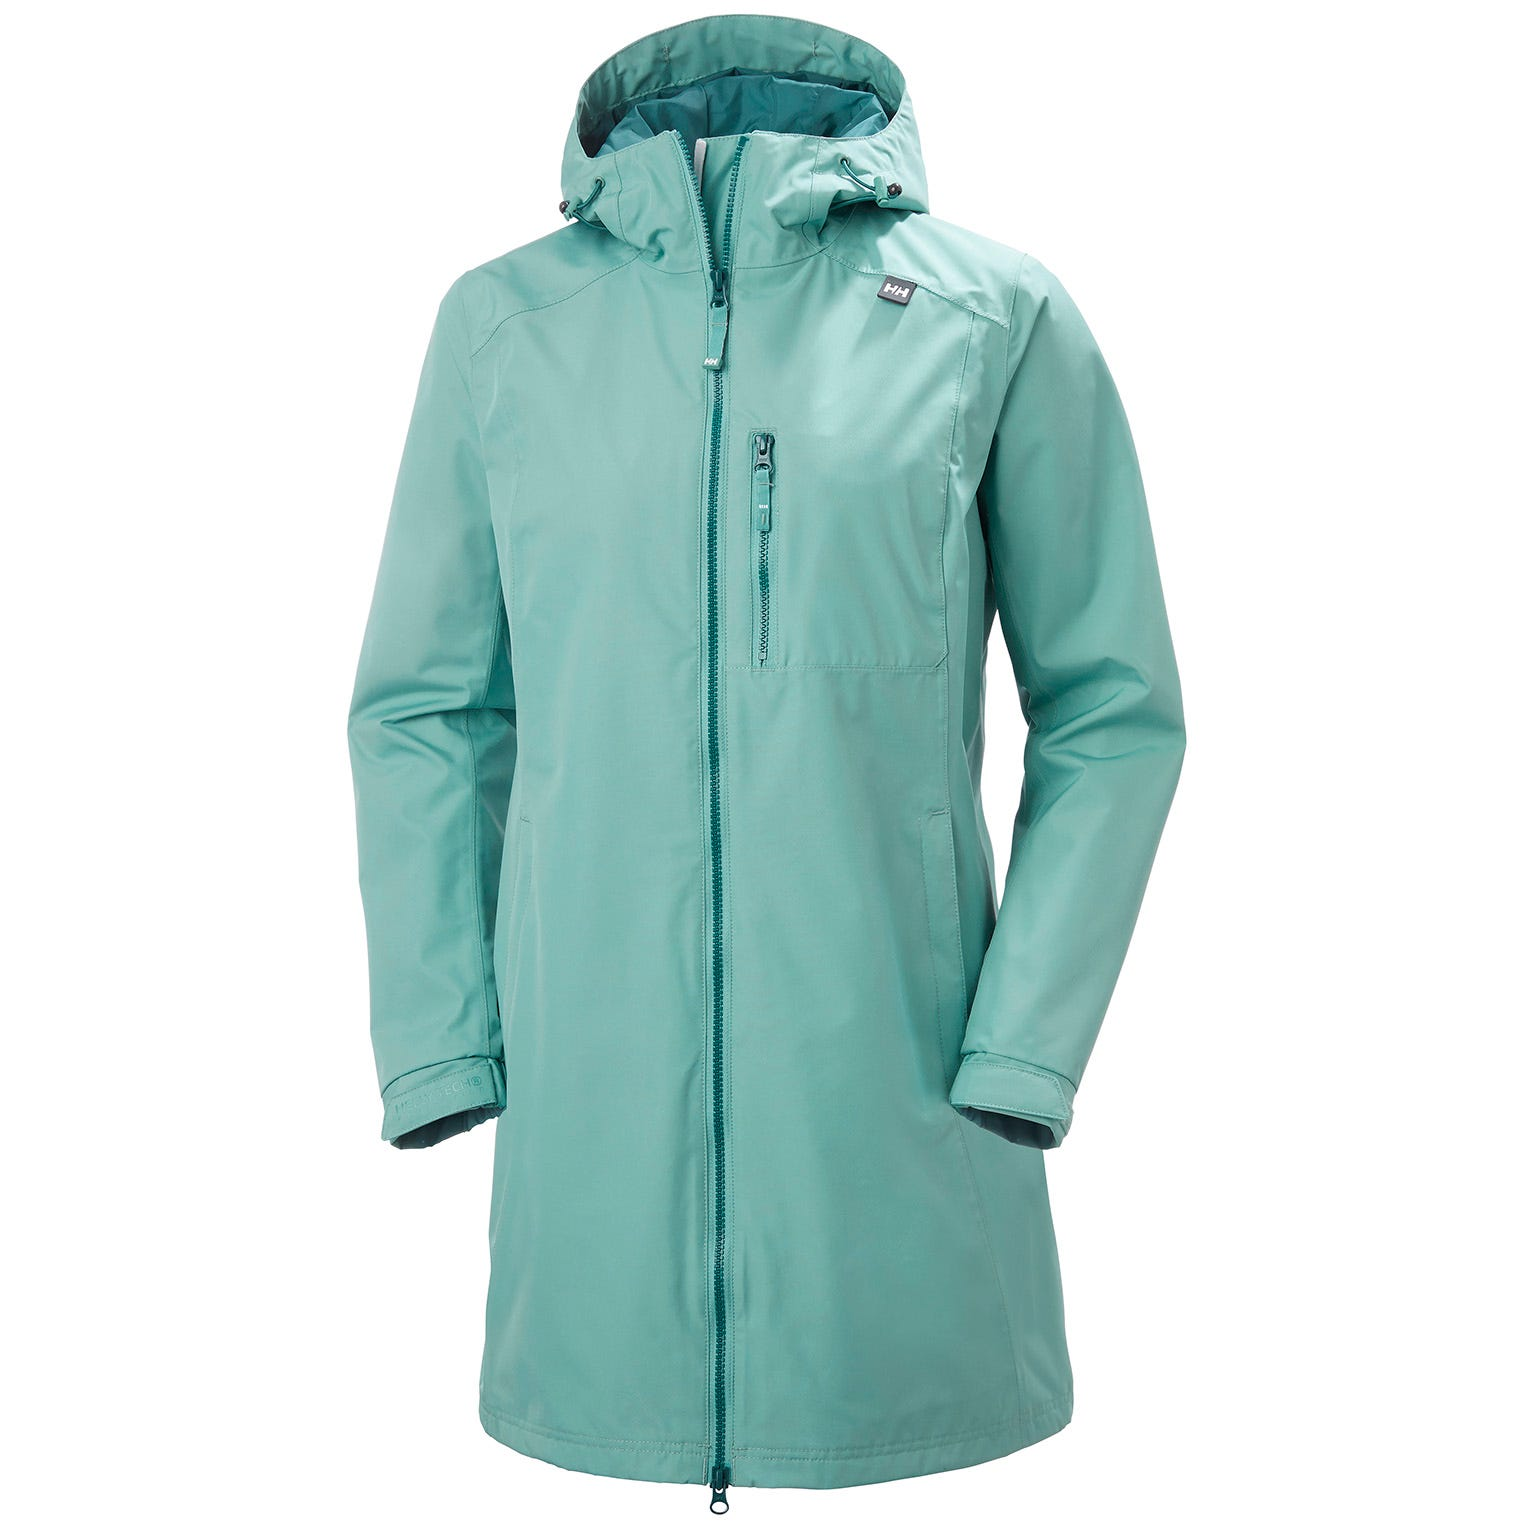 Womens Long Belfast 3/4 Length Rain Jacket | Helly Hansen Womens Blue L